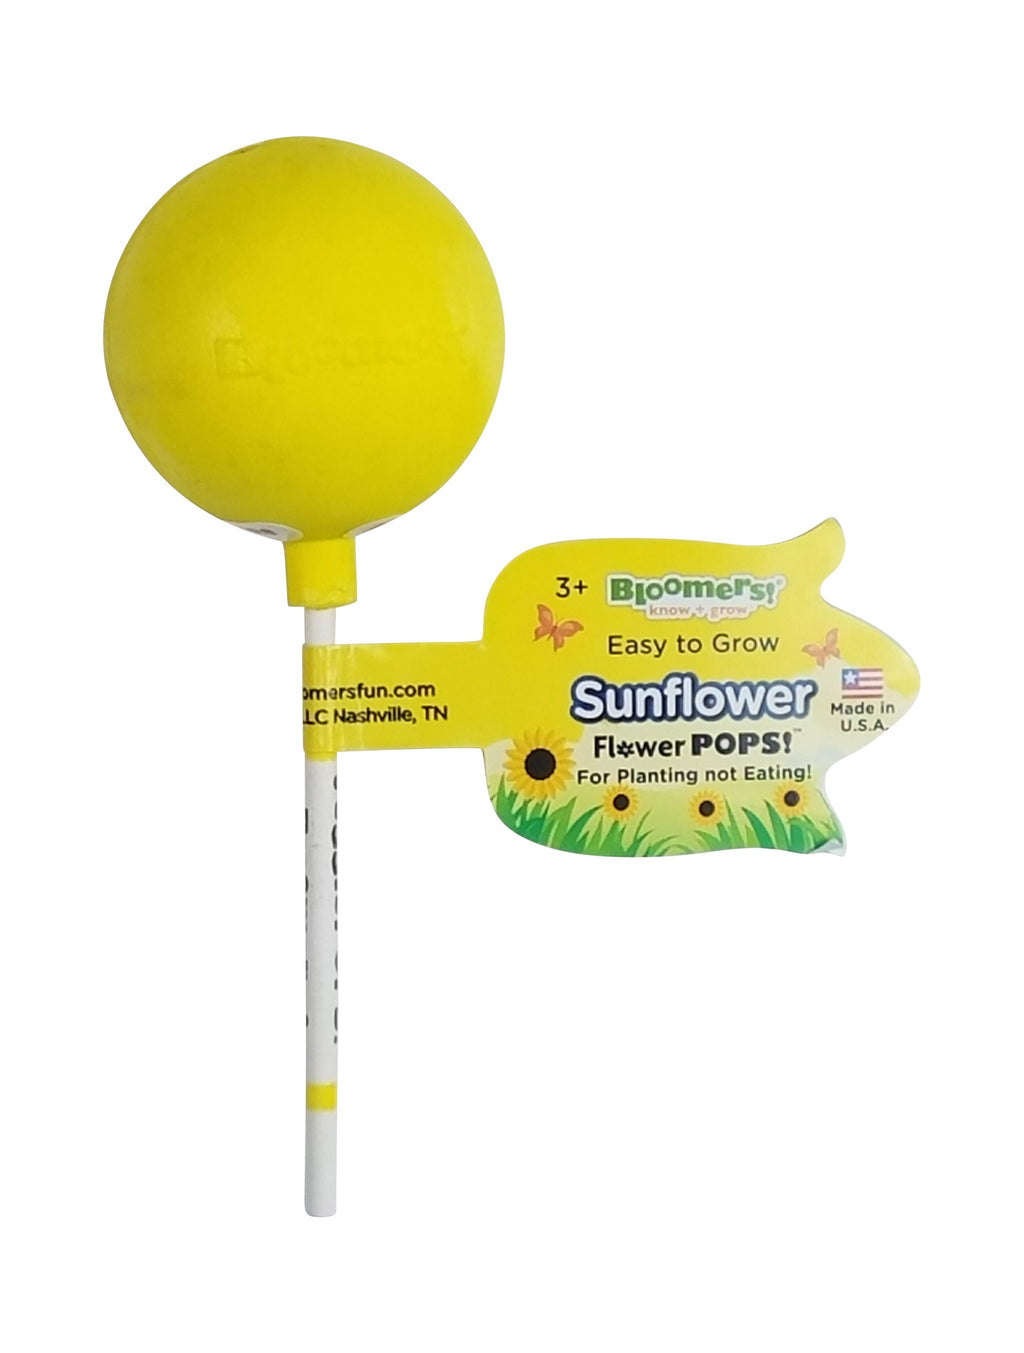 FlowersPOPS! Sunflower - 3 Pack